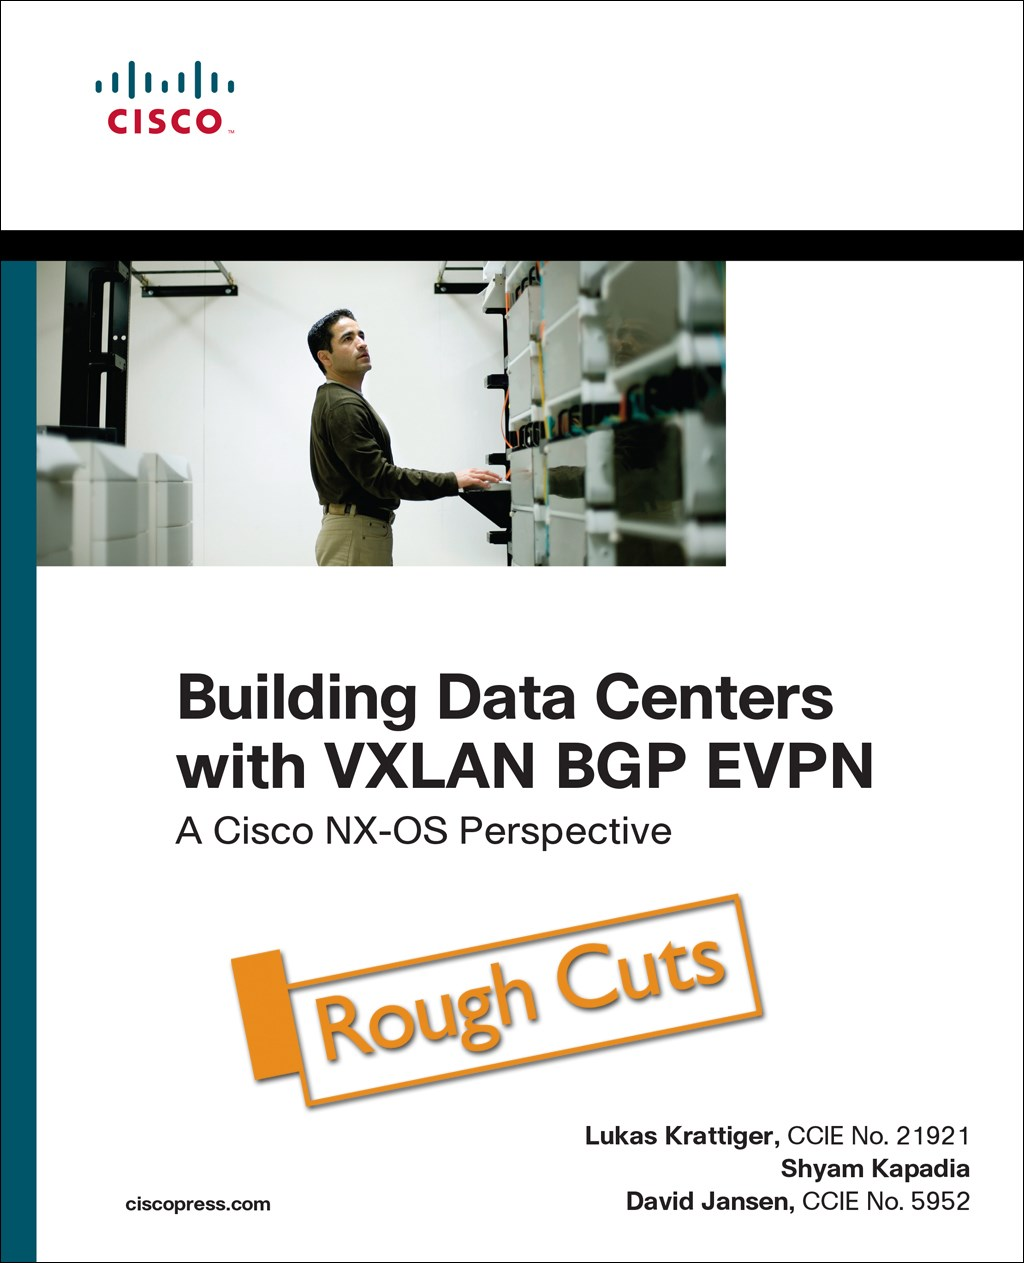 Building Data Centers with VXLAN BGP EVPN: A Cisco NX-OS Perspective, Rough Cuts